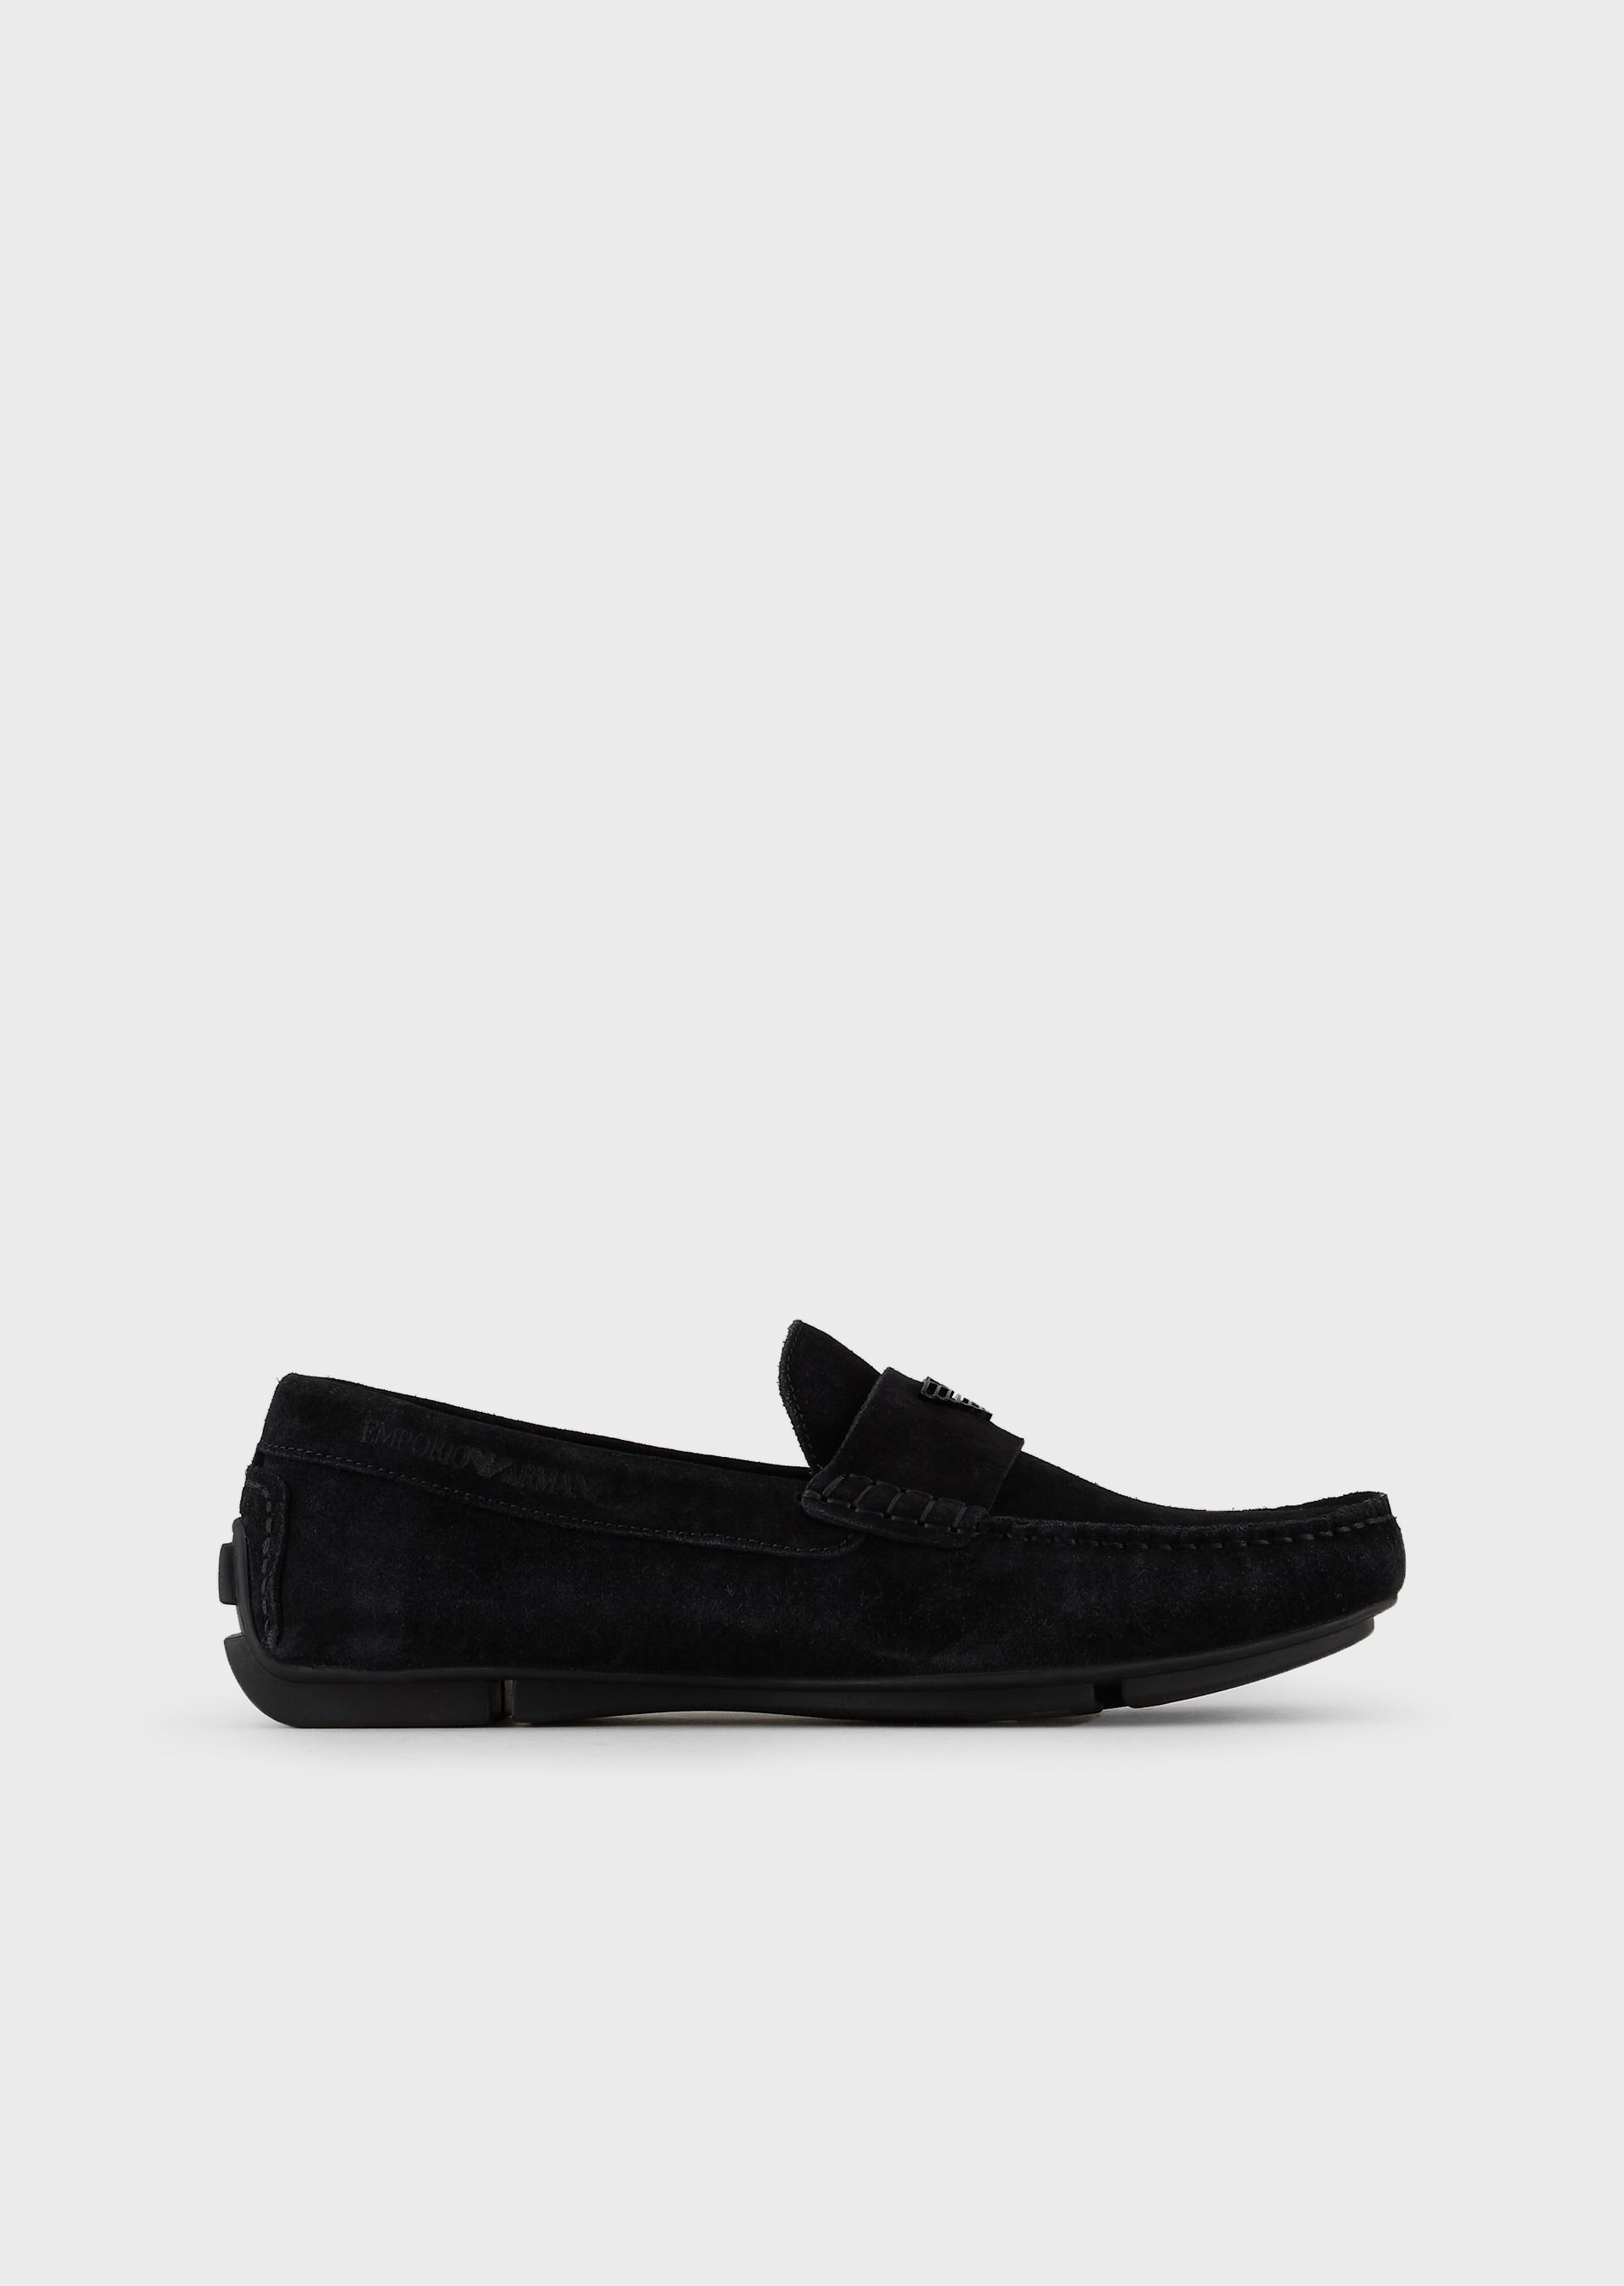 EMPORIO ARMANI Suede driving loafers with logo